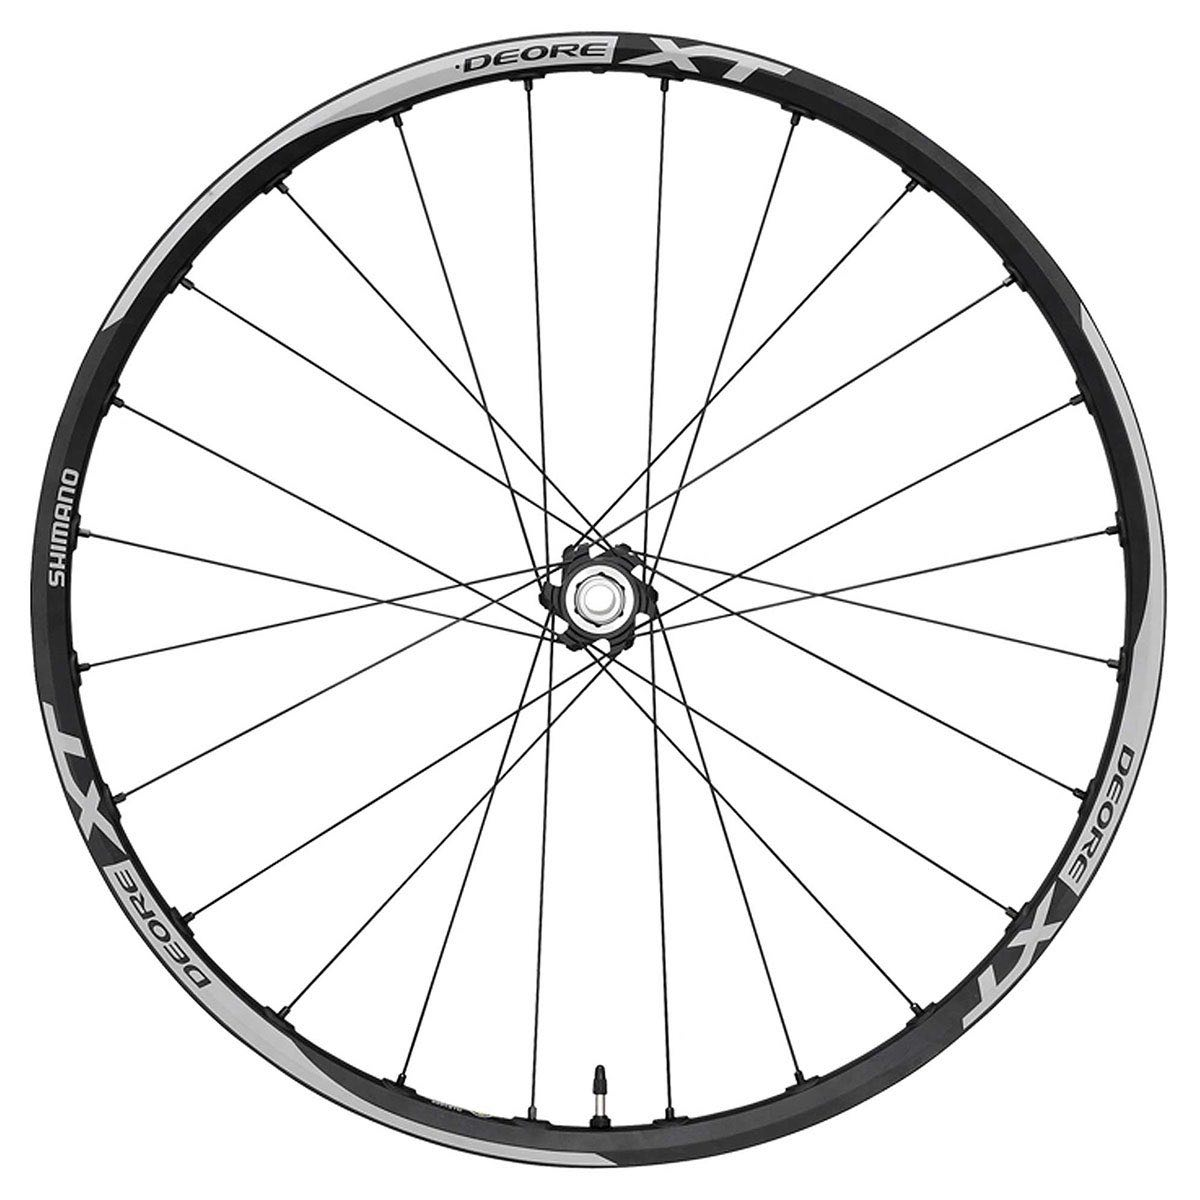 Shimano (WHM785) Deore XT Disc Wheelset (Front + Rear)